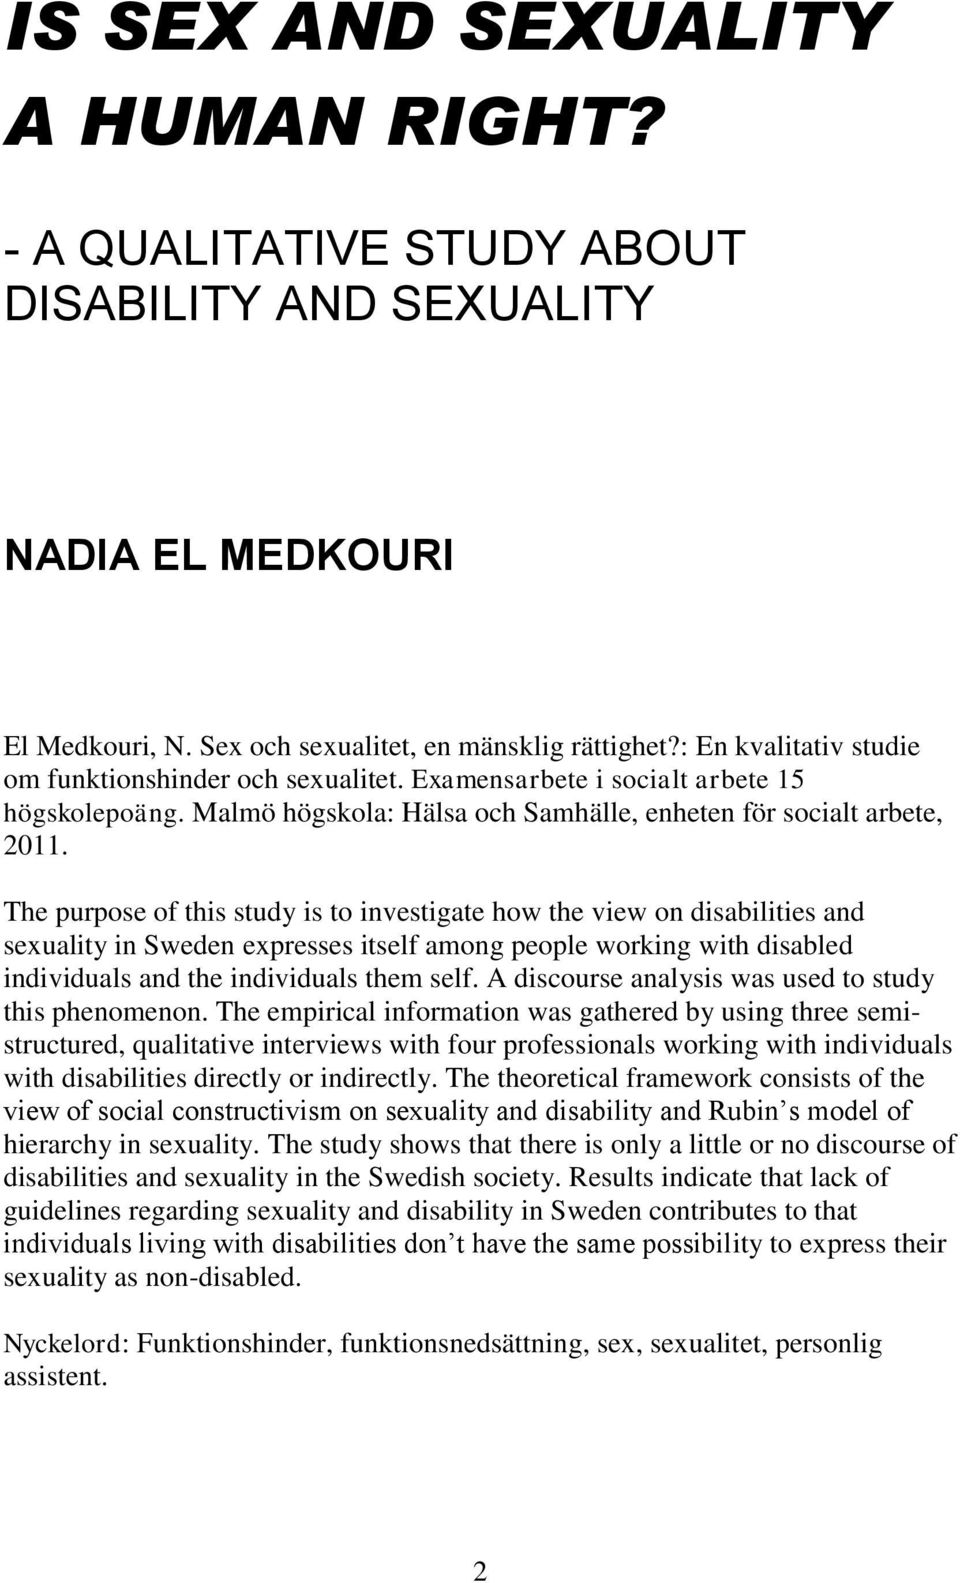 The purpose of this study is to investigate how the view on disabilities and sexuality in Sweden expresses itself among people working with disabled individuals and the individuals them self.